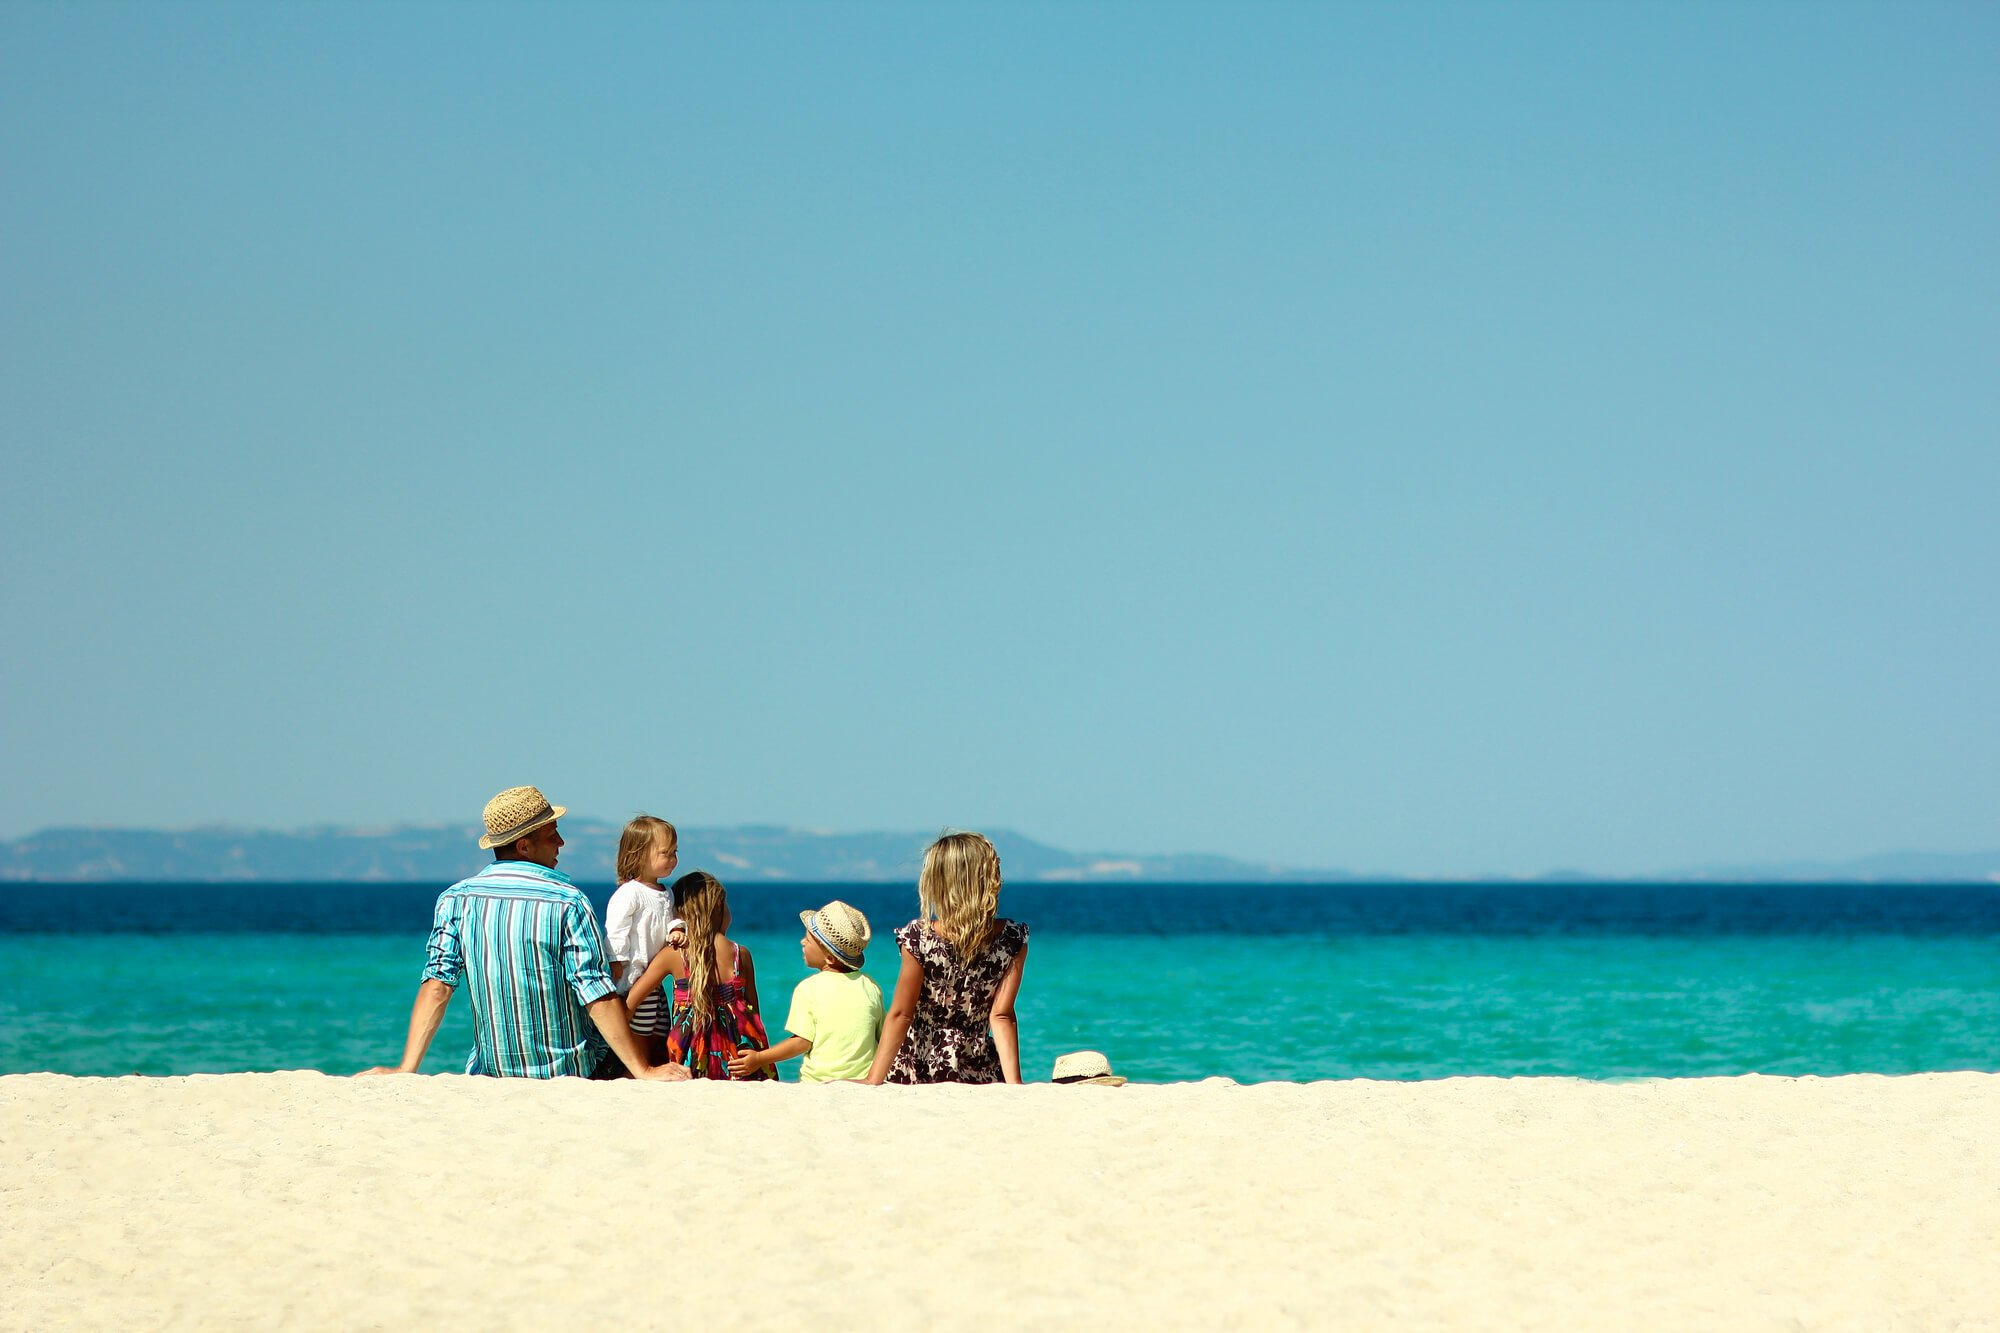 A family of 2 adults and 3 children sitting on a white sandy beach looking out to sea